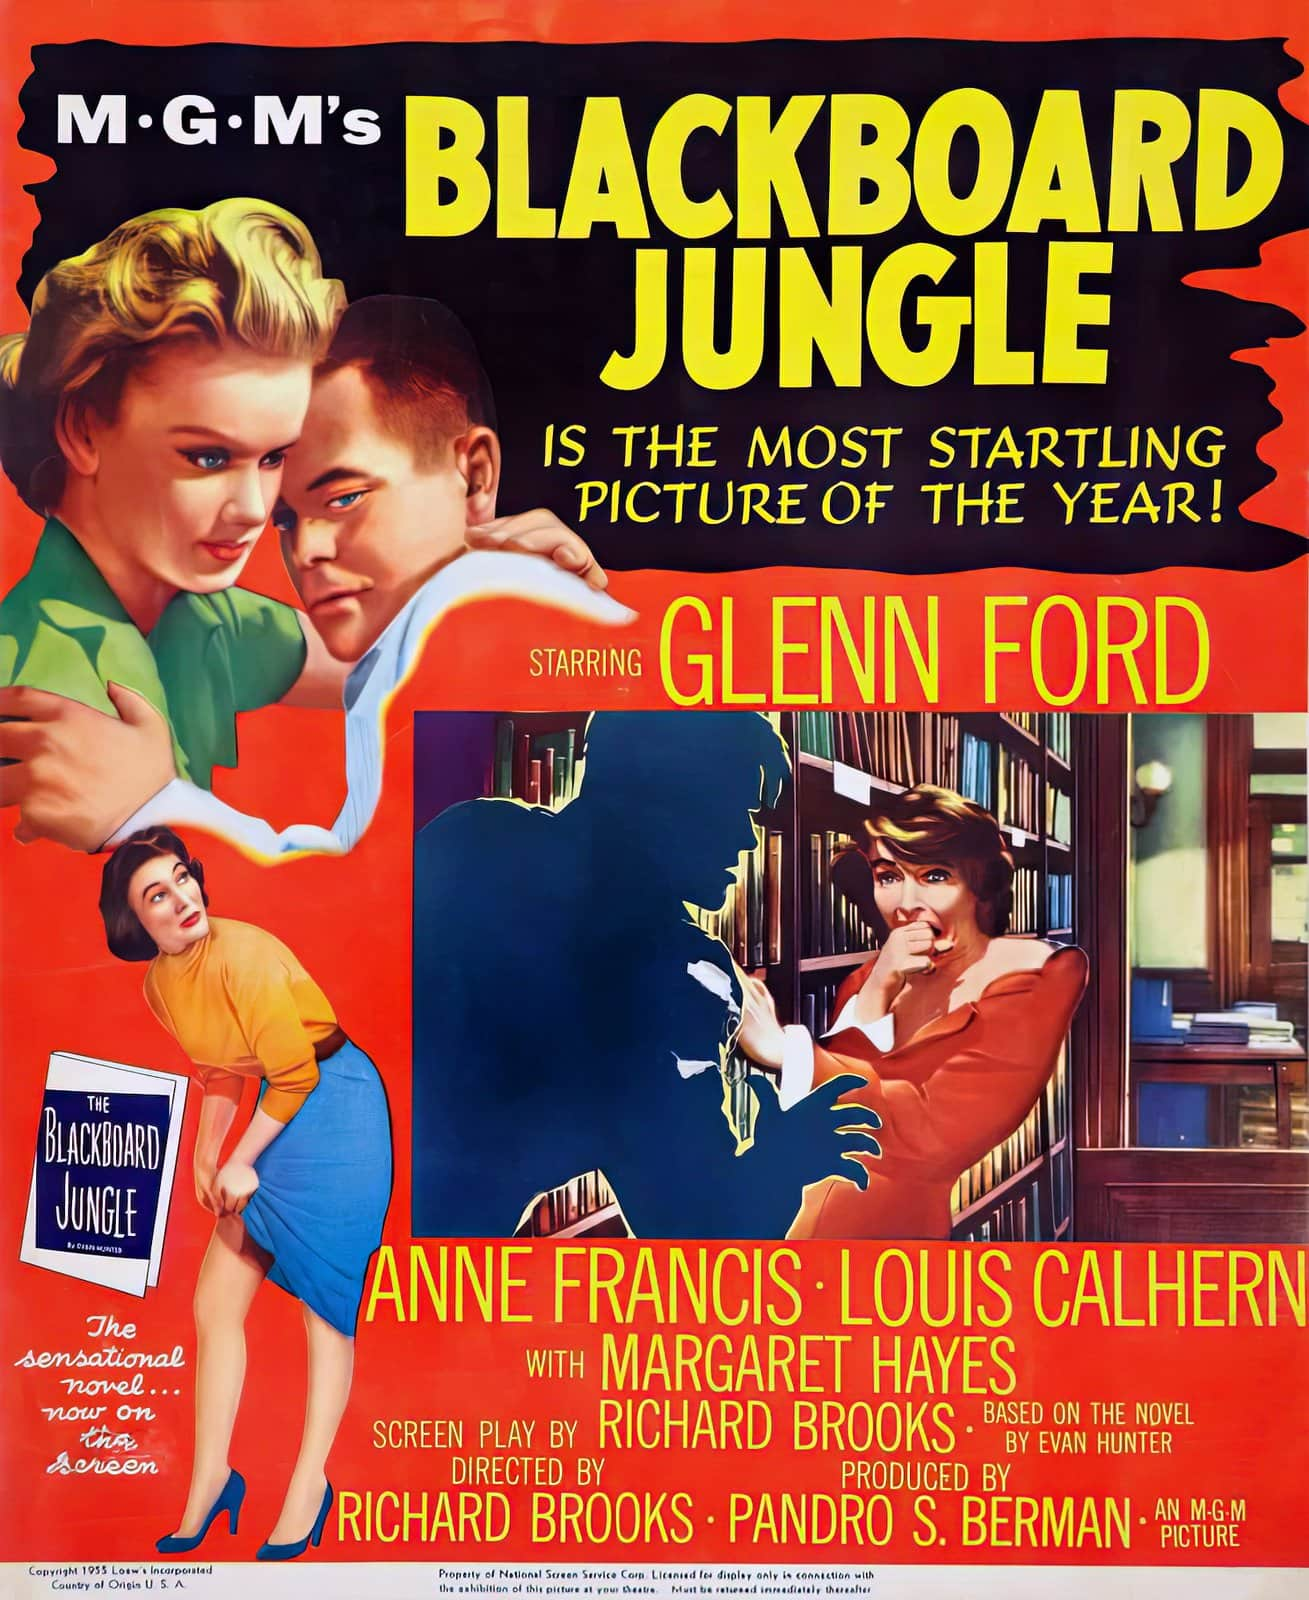 Blackboard Jungle - Vintage 1950s movie